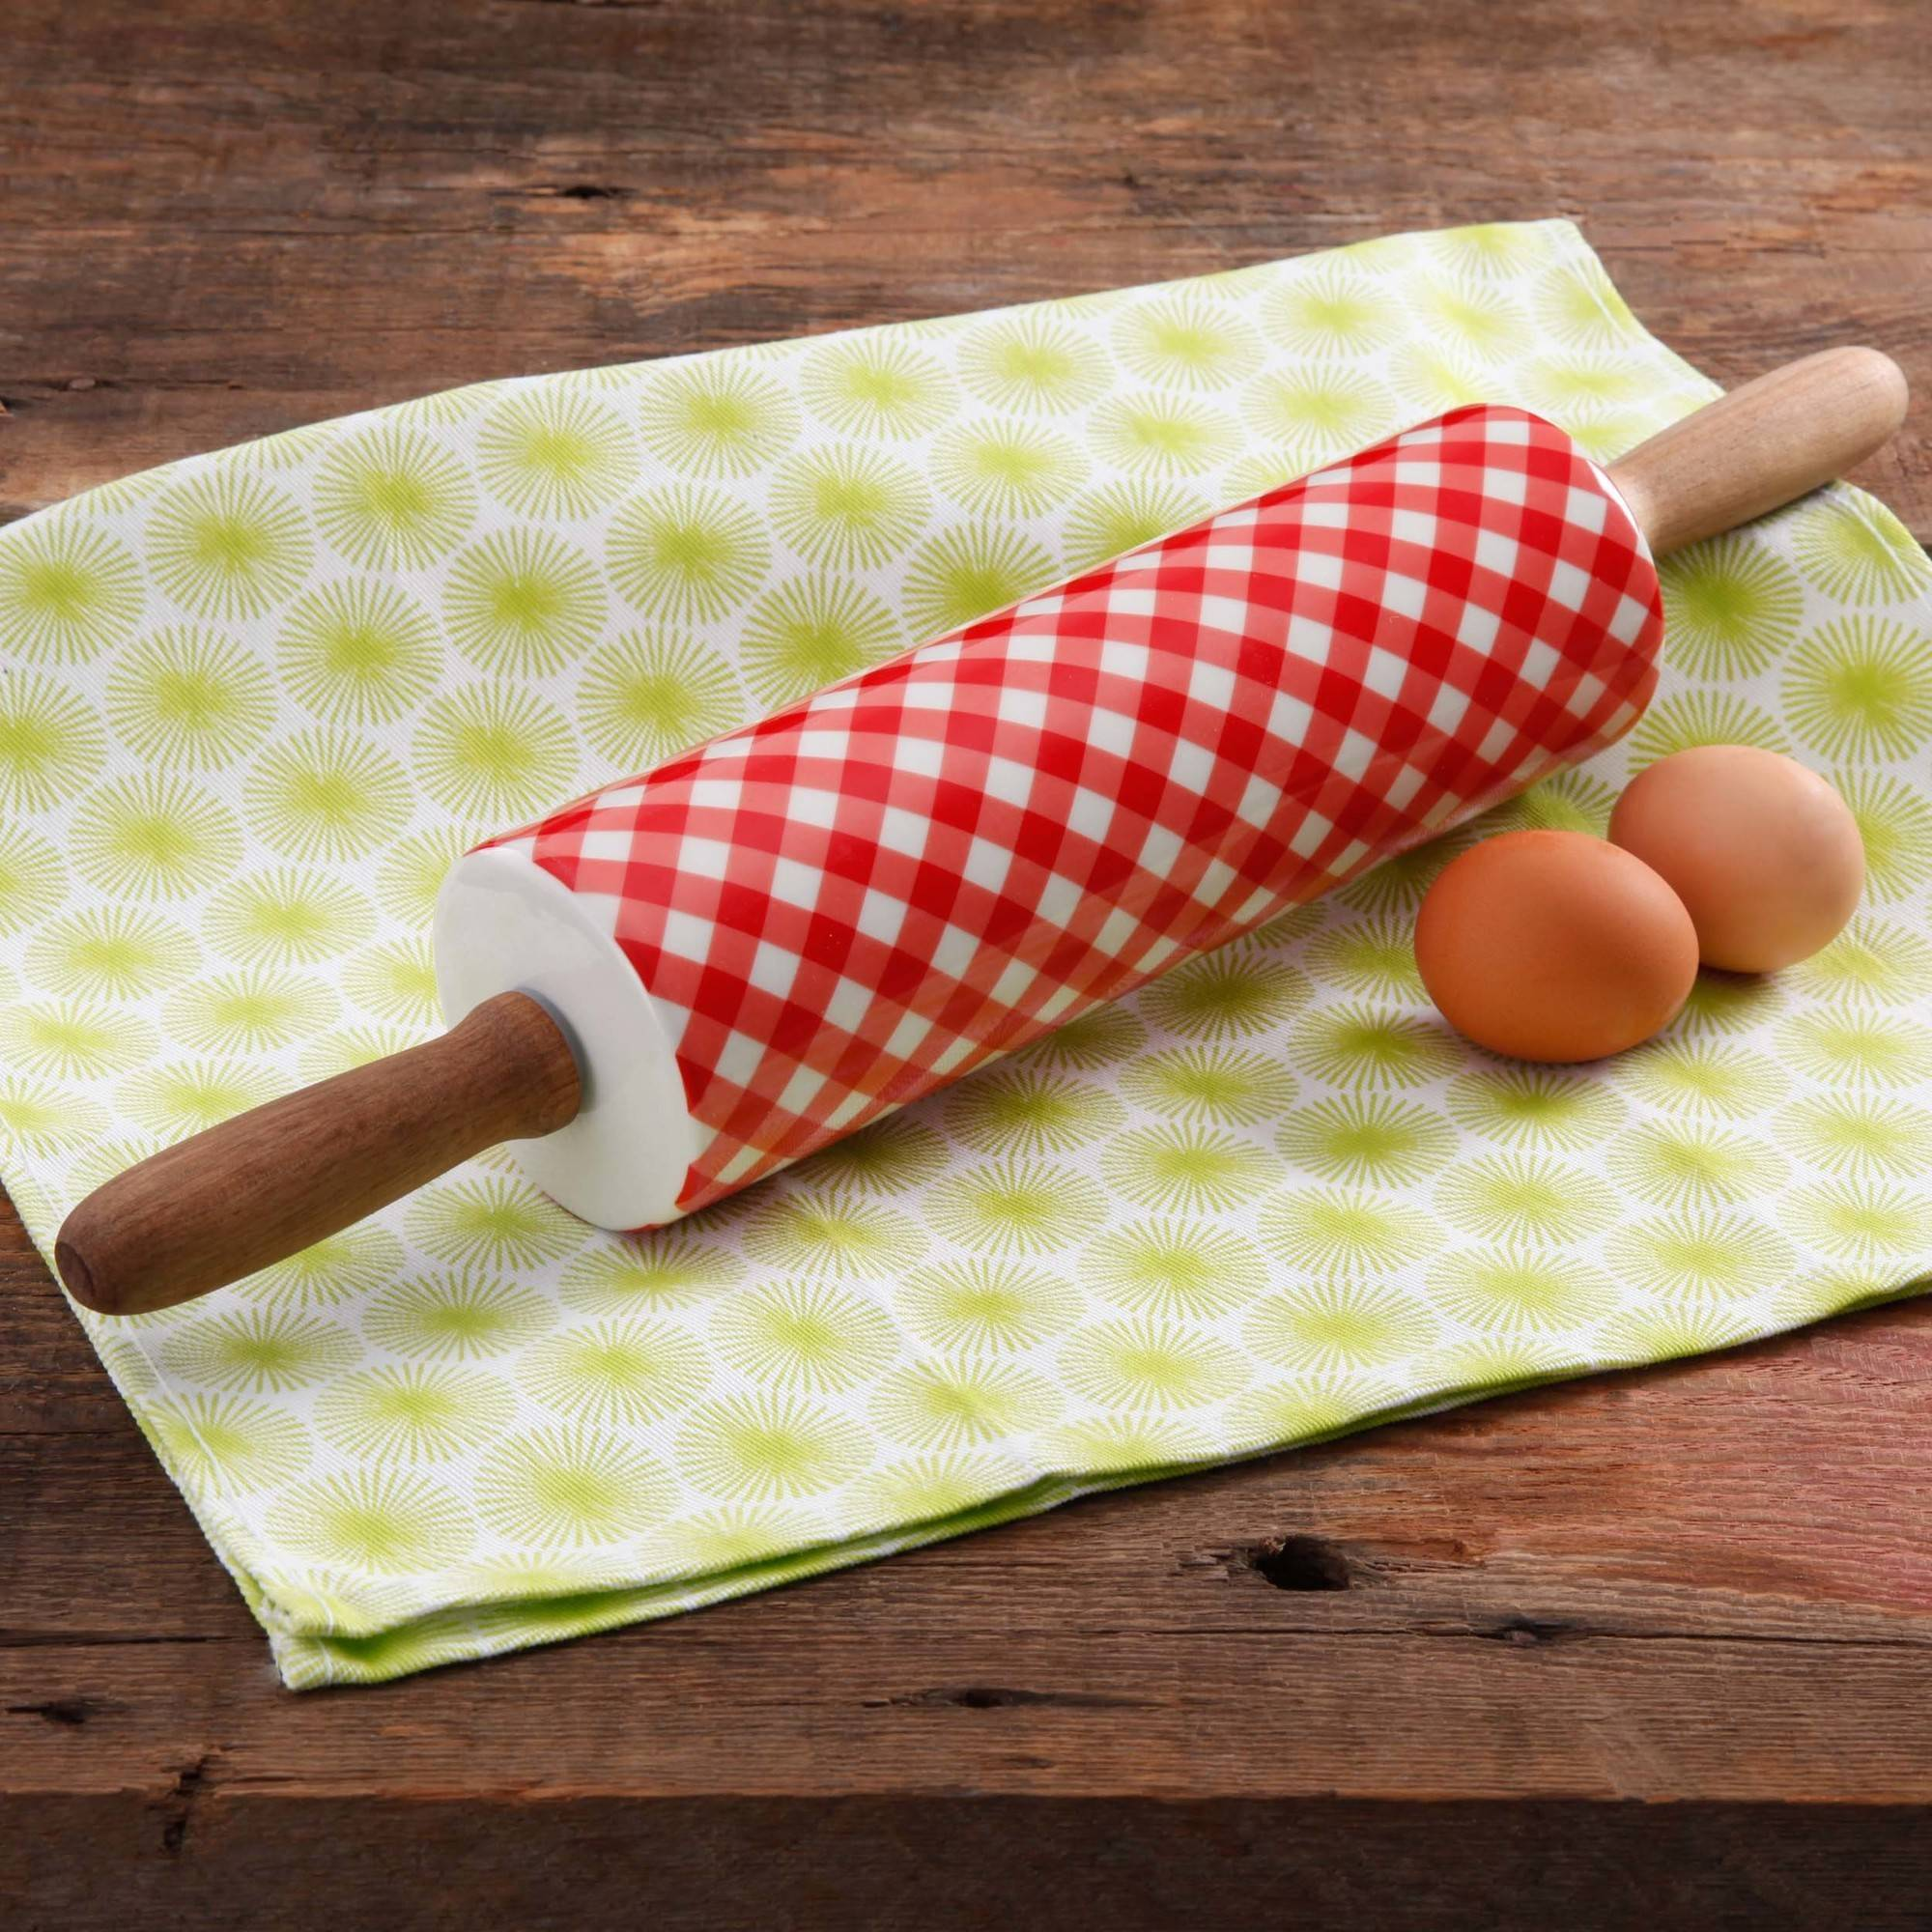 The Pioneer Woman Charming Check Rolling Pin